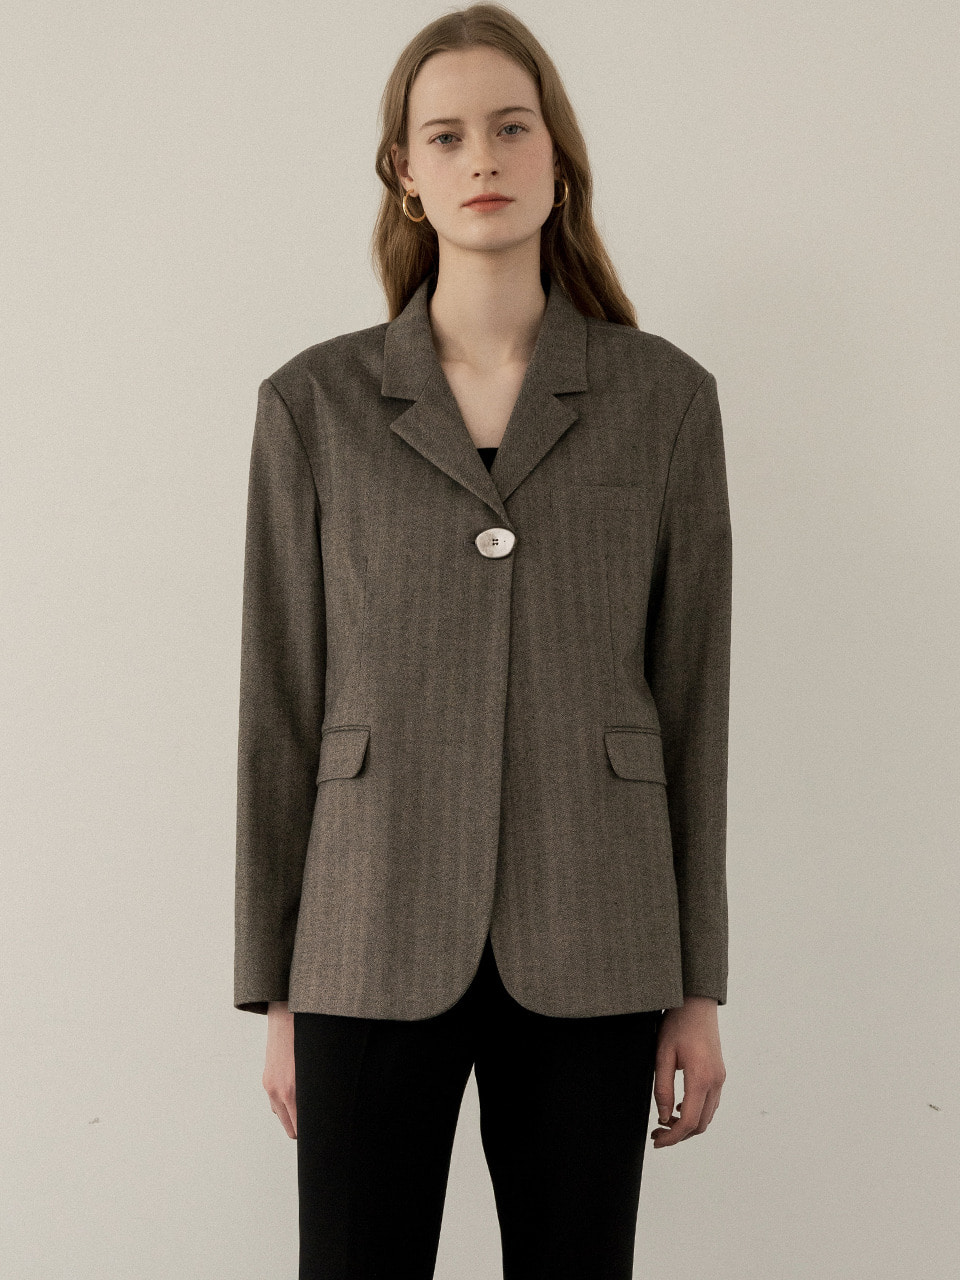 comos'244 point-button single jacket (brown)